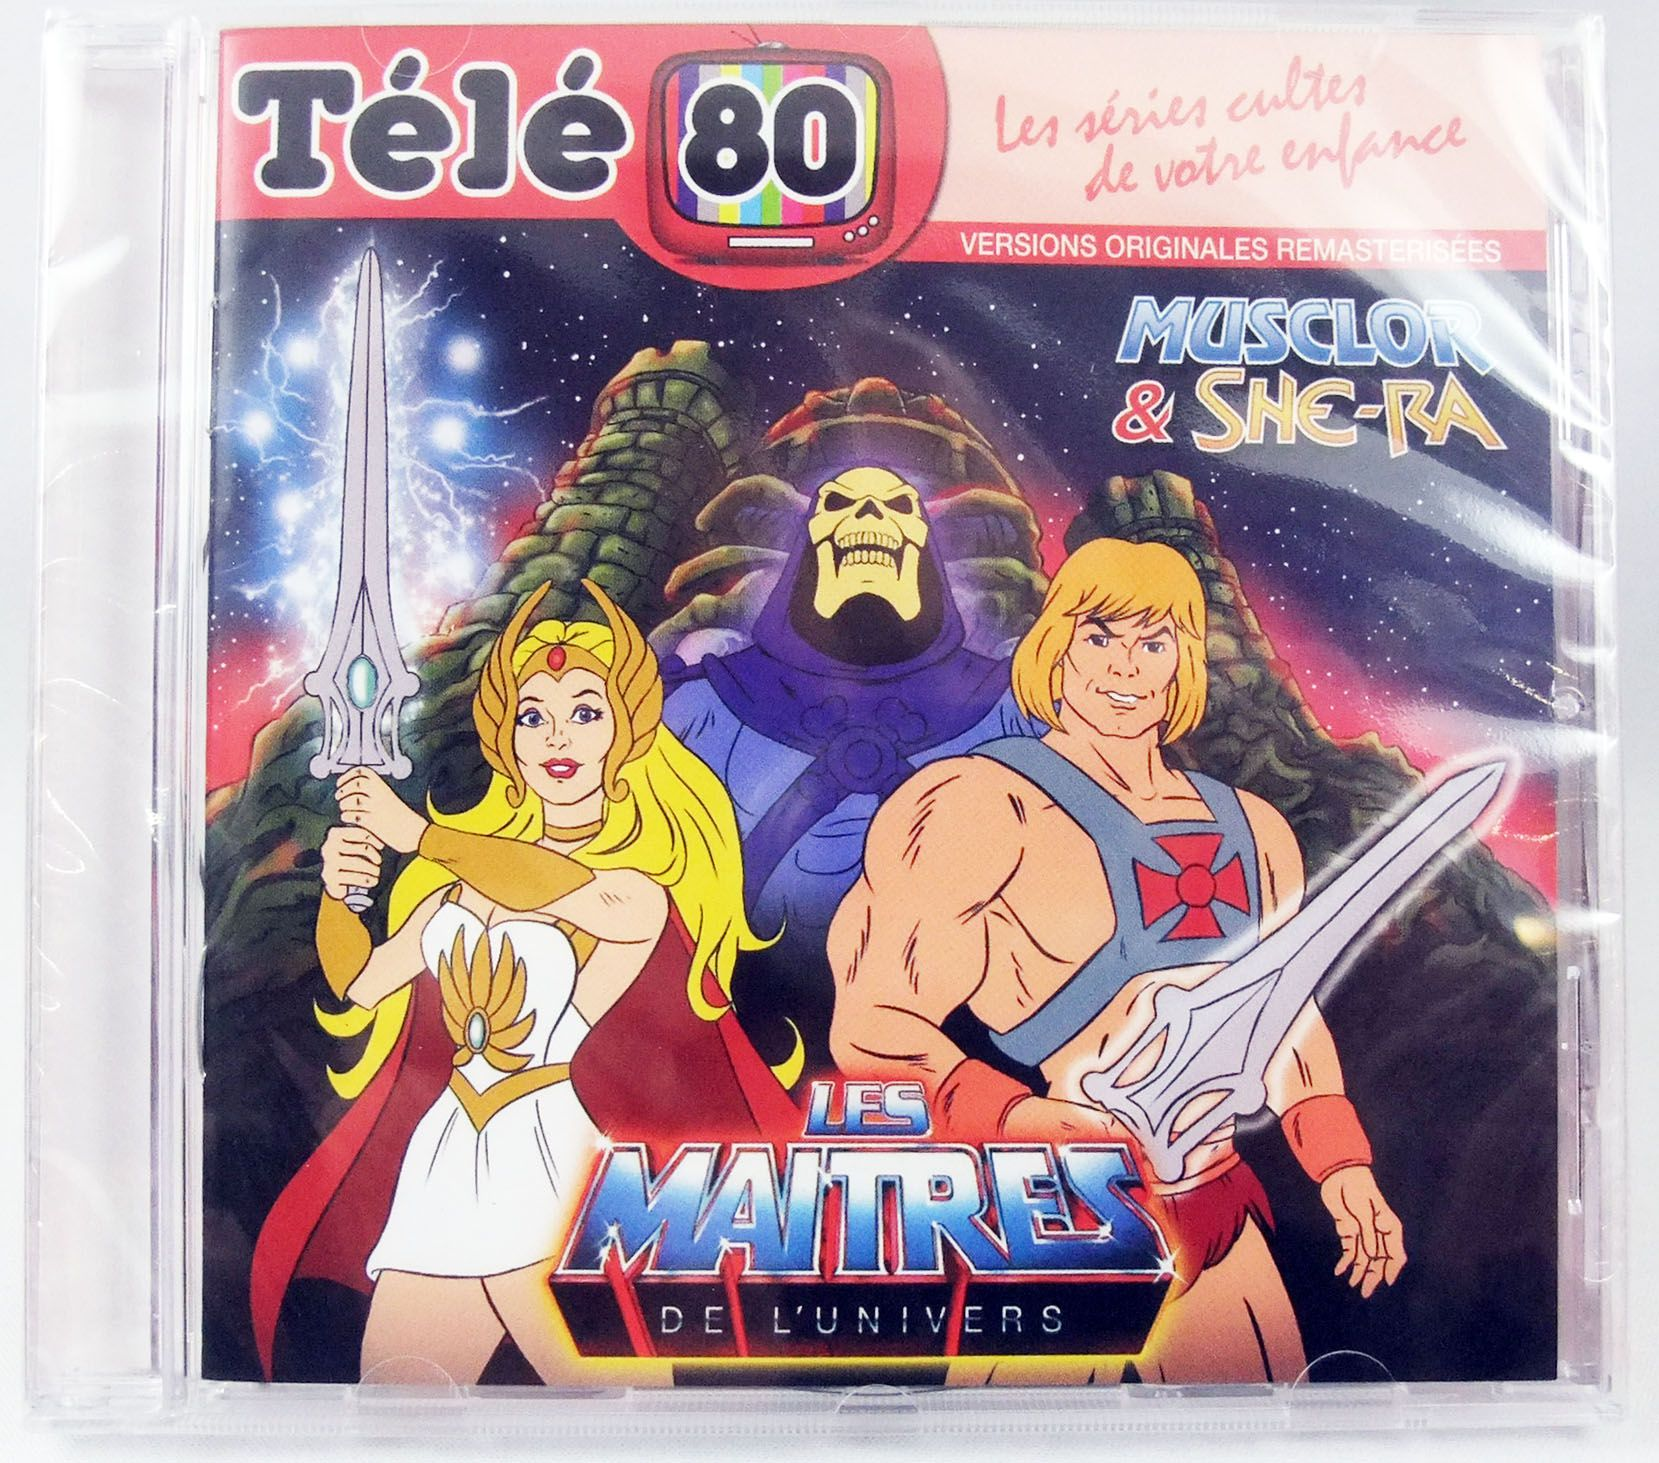 Masters of the Universe : He-Man & She-Ra - Compact Disc - Original TV series soundtrack